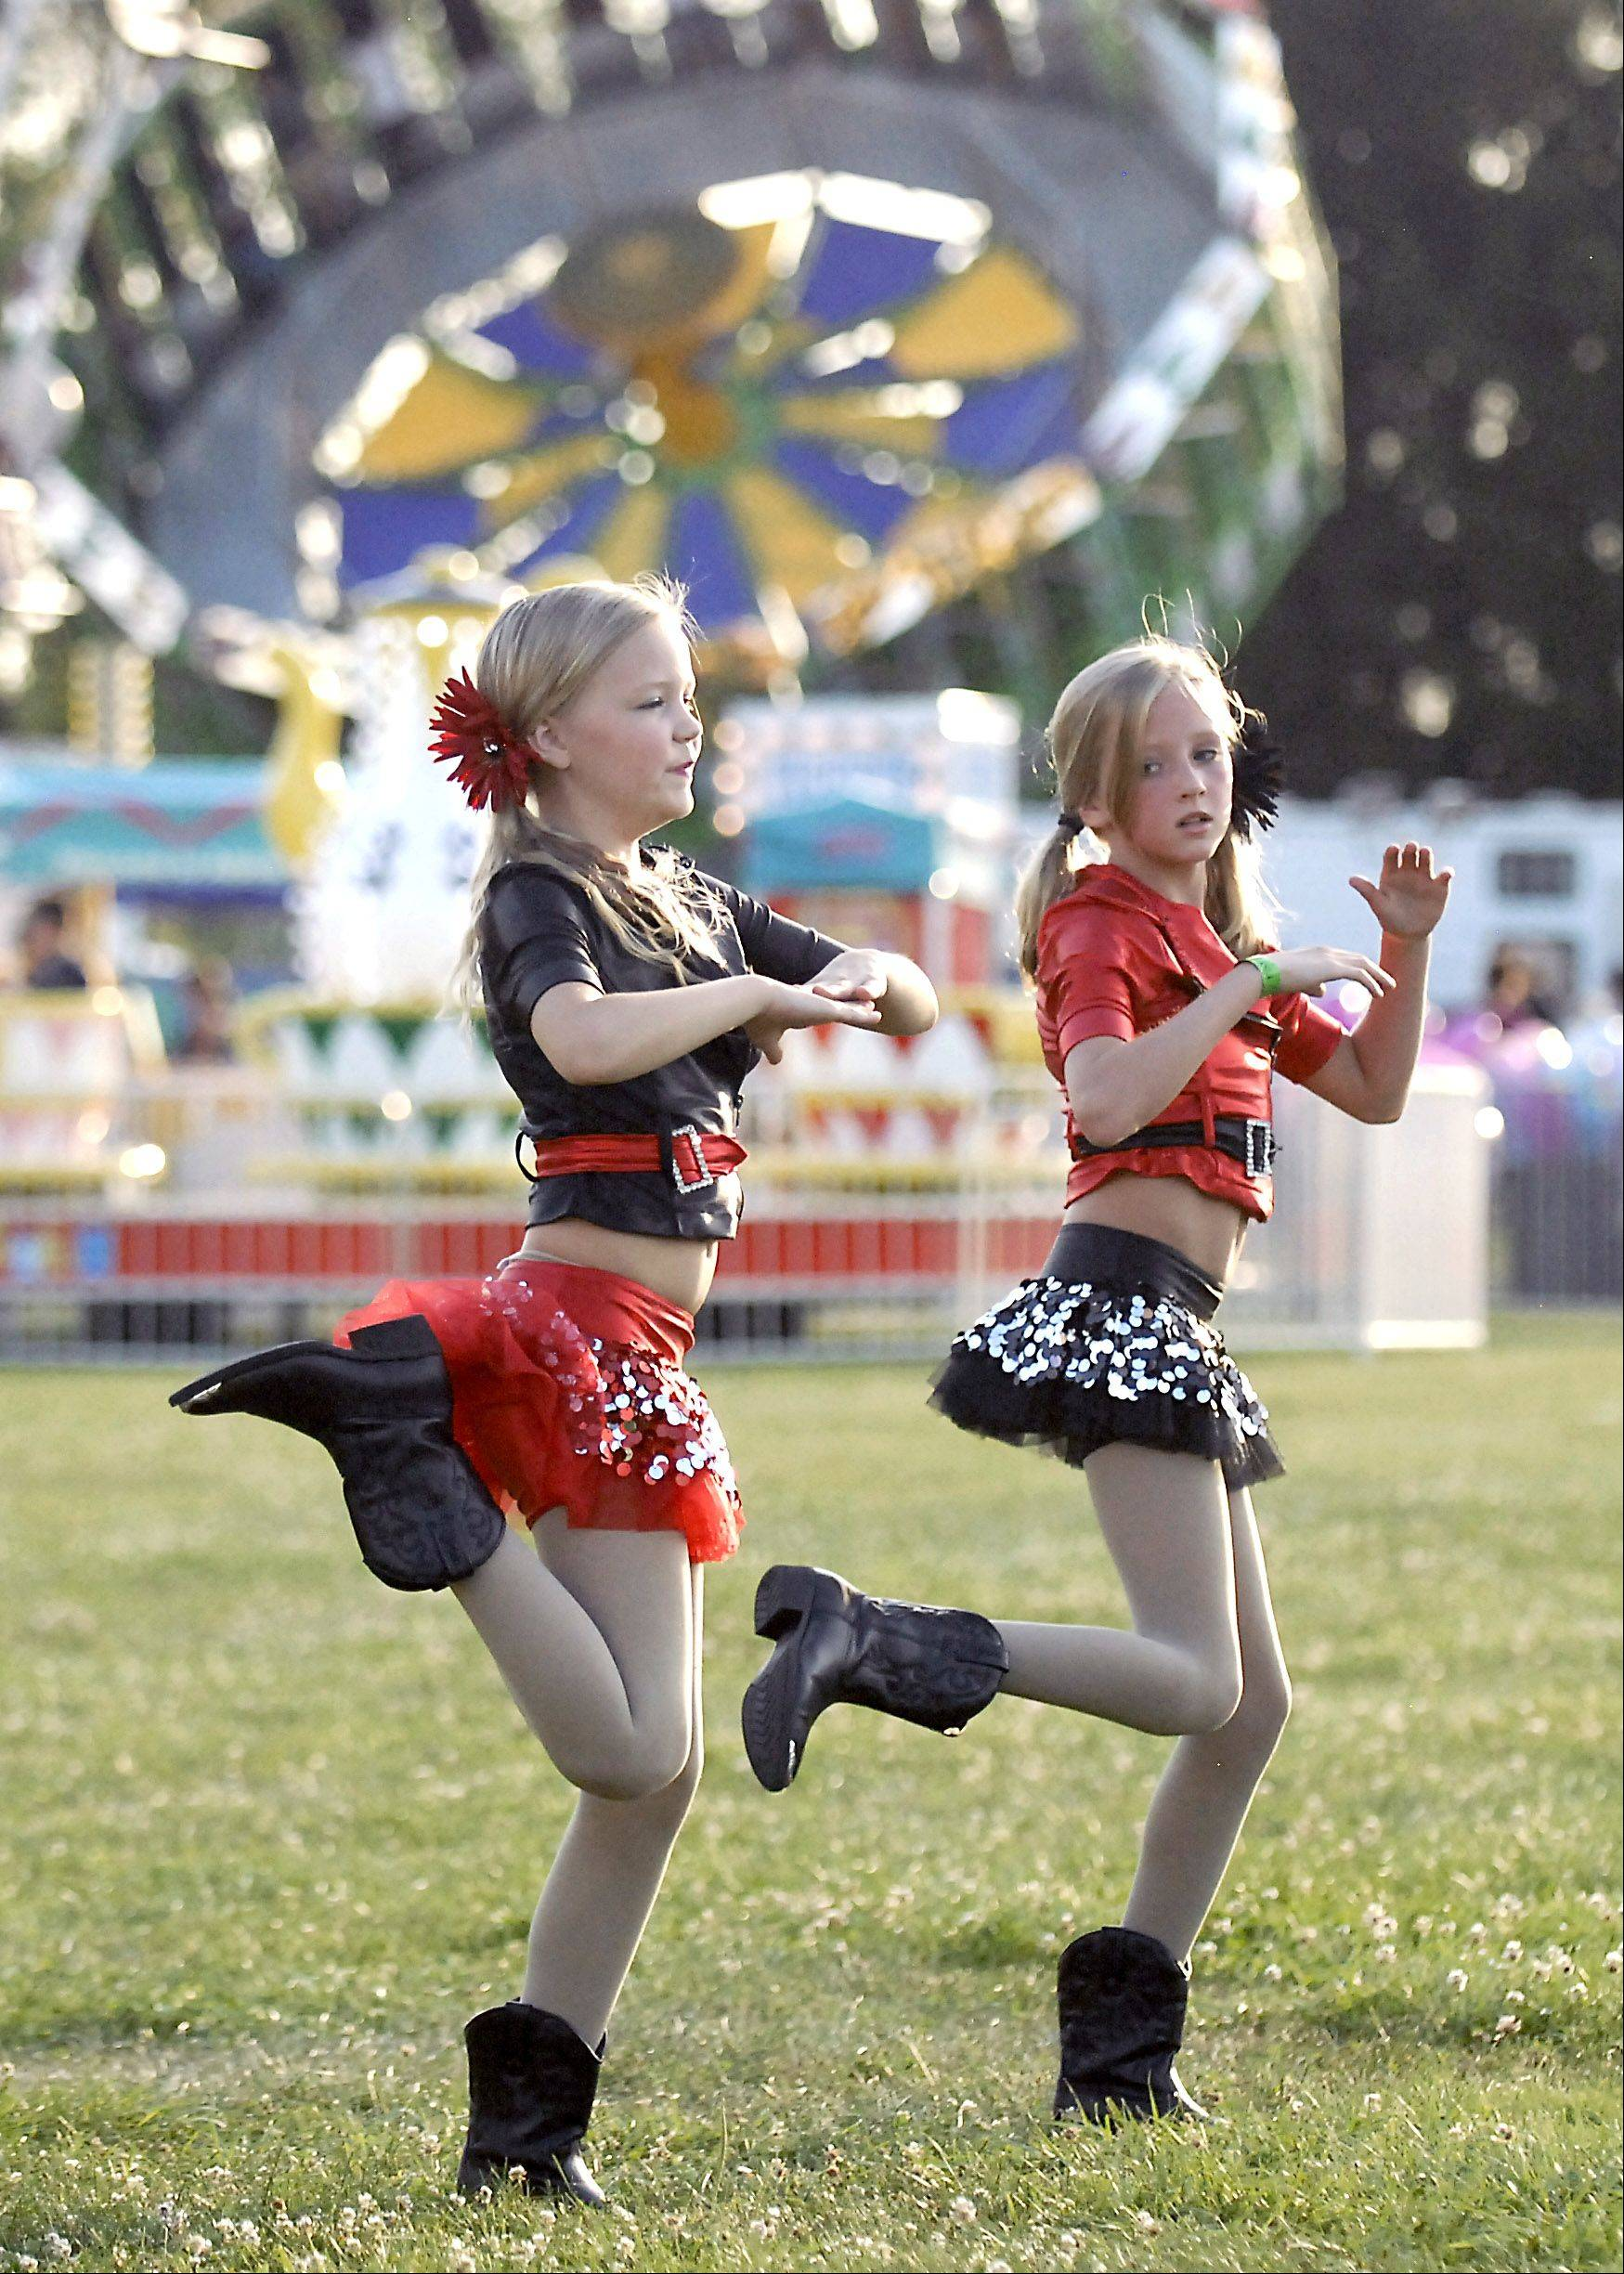 Olivia Bruneman, left, of Kingston and Emma Hockey of Maple Park, both 10, rehearse their dance number backstage at Hampshire's Coon Creek Country Days in Bruce Ream Park on Thursday, August 2. The girls are dance with the Northern Illinois Dance Center, which is located in Hampshire. Over 25 dance students performed 11 acts as the opening entertainment for the festival.